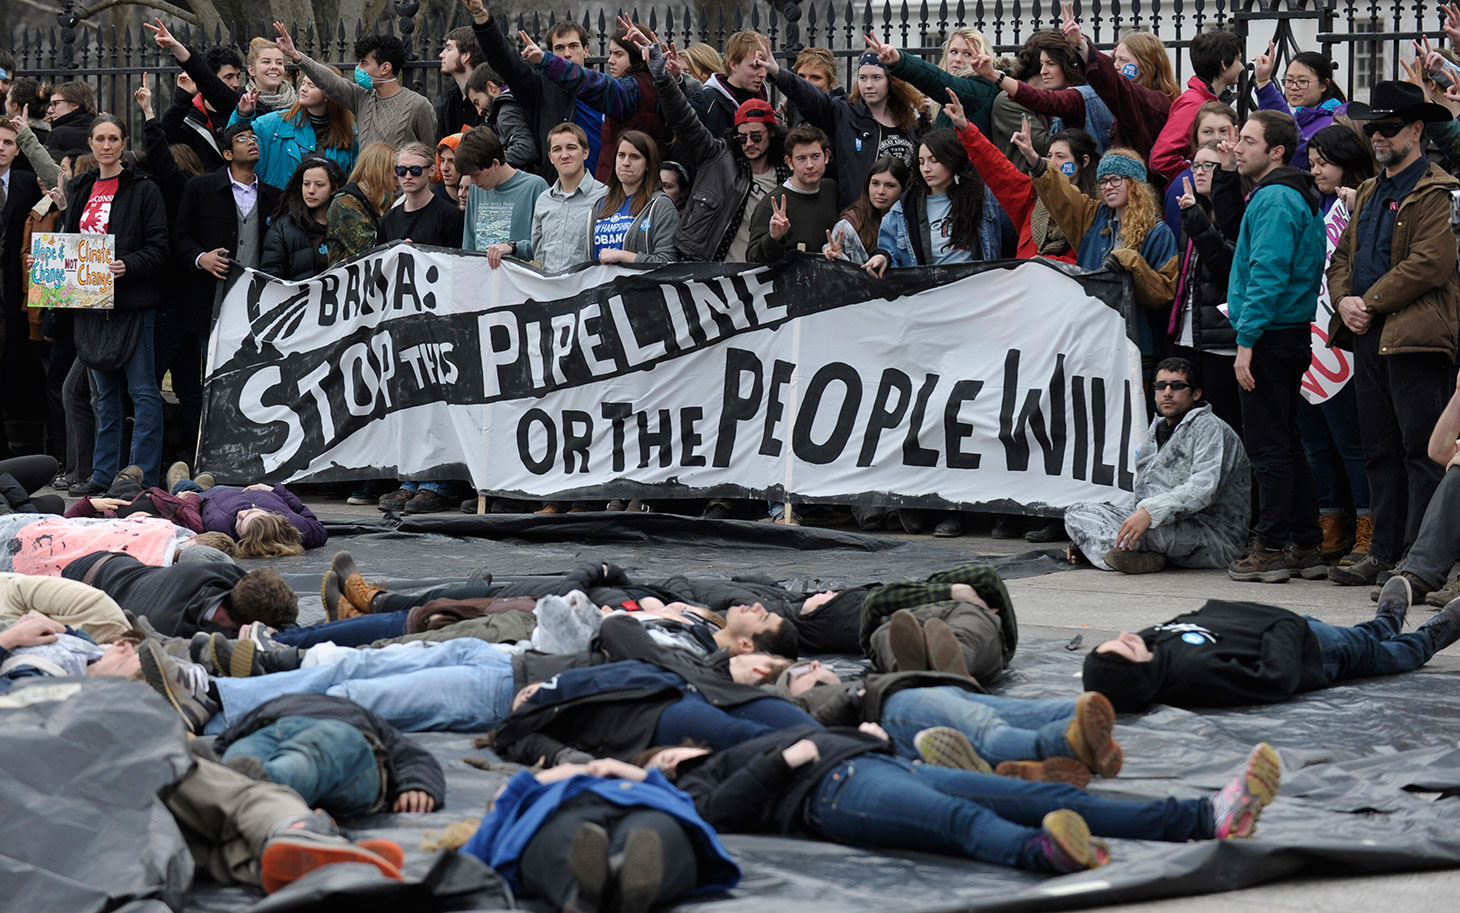 Several hundred students and youth who marched from Georgetown University to the White House to protest the Keystone XL Pipeline wait to be arrested outside the White House in Washington, Sunday, March 2, 2014. (AP Photo/Susan Walsh)